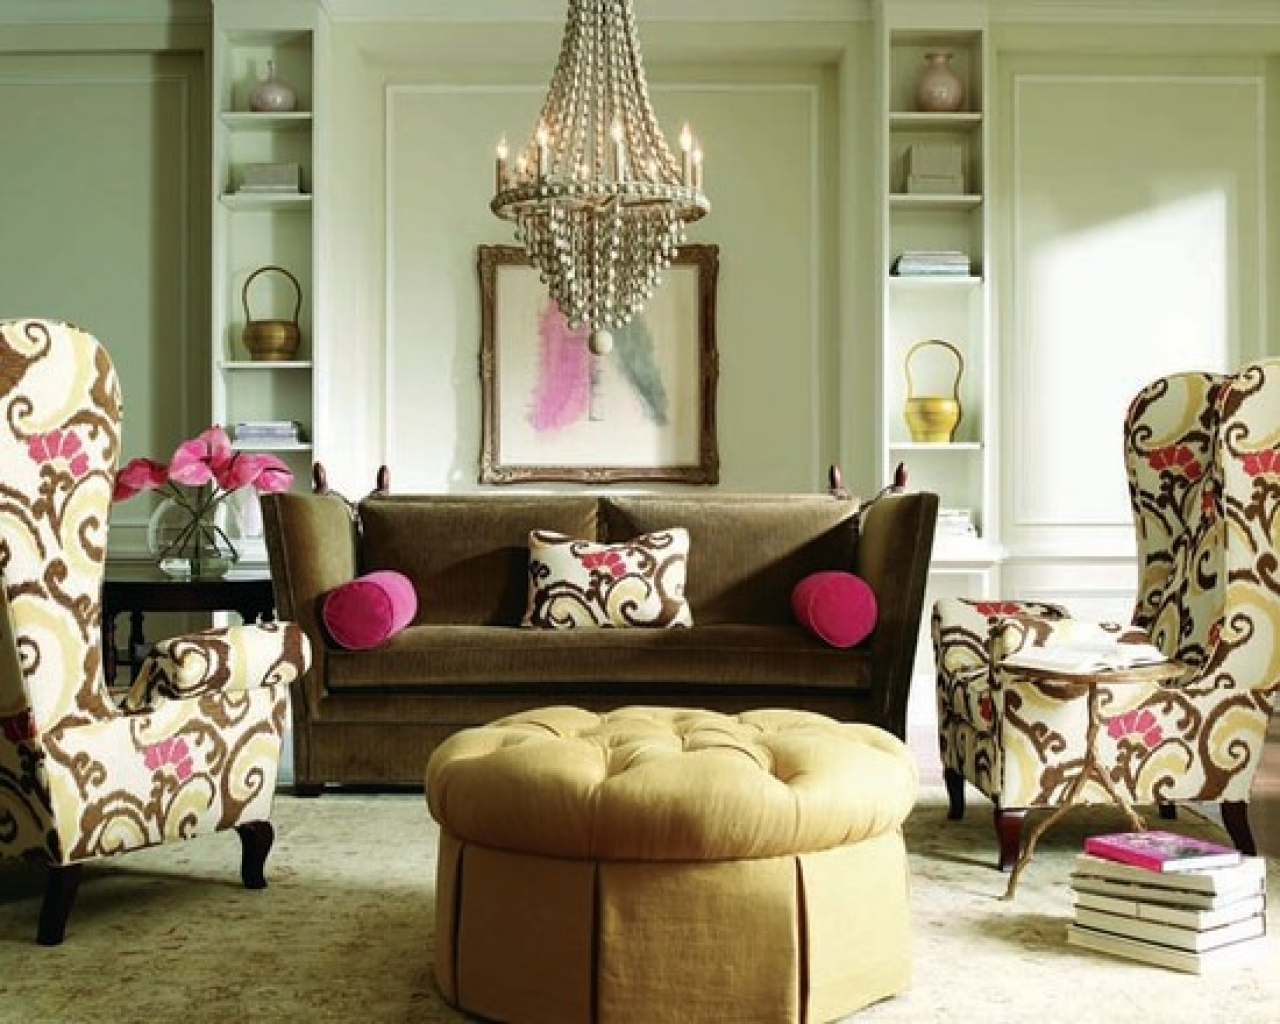 25 stunning eclectic living room decor ideas - Living room themes decorating ideas ...